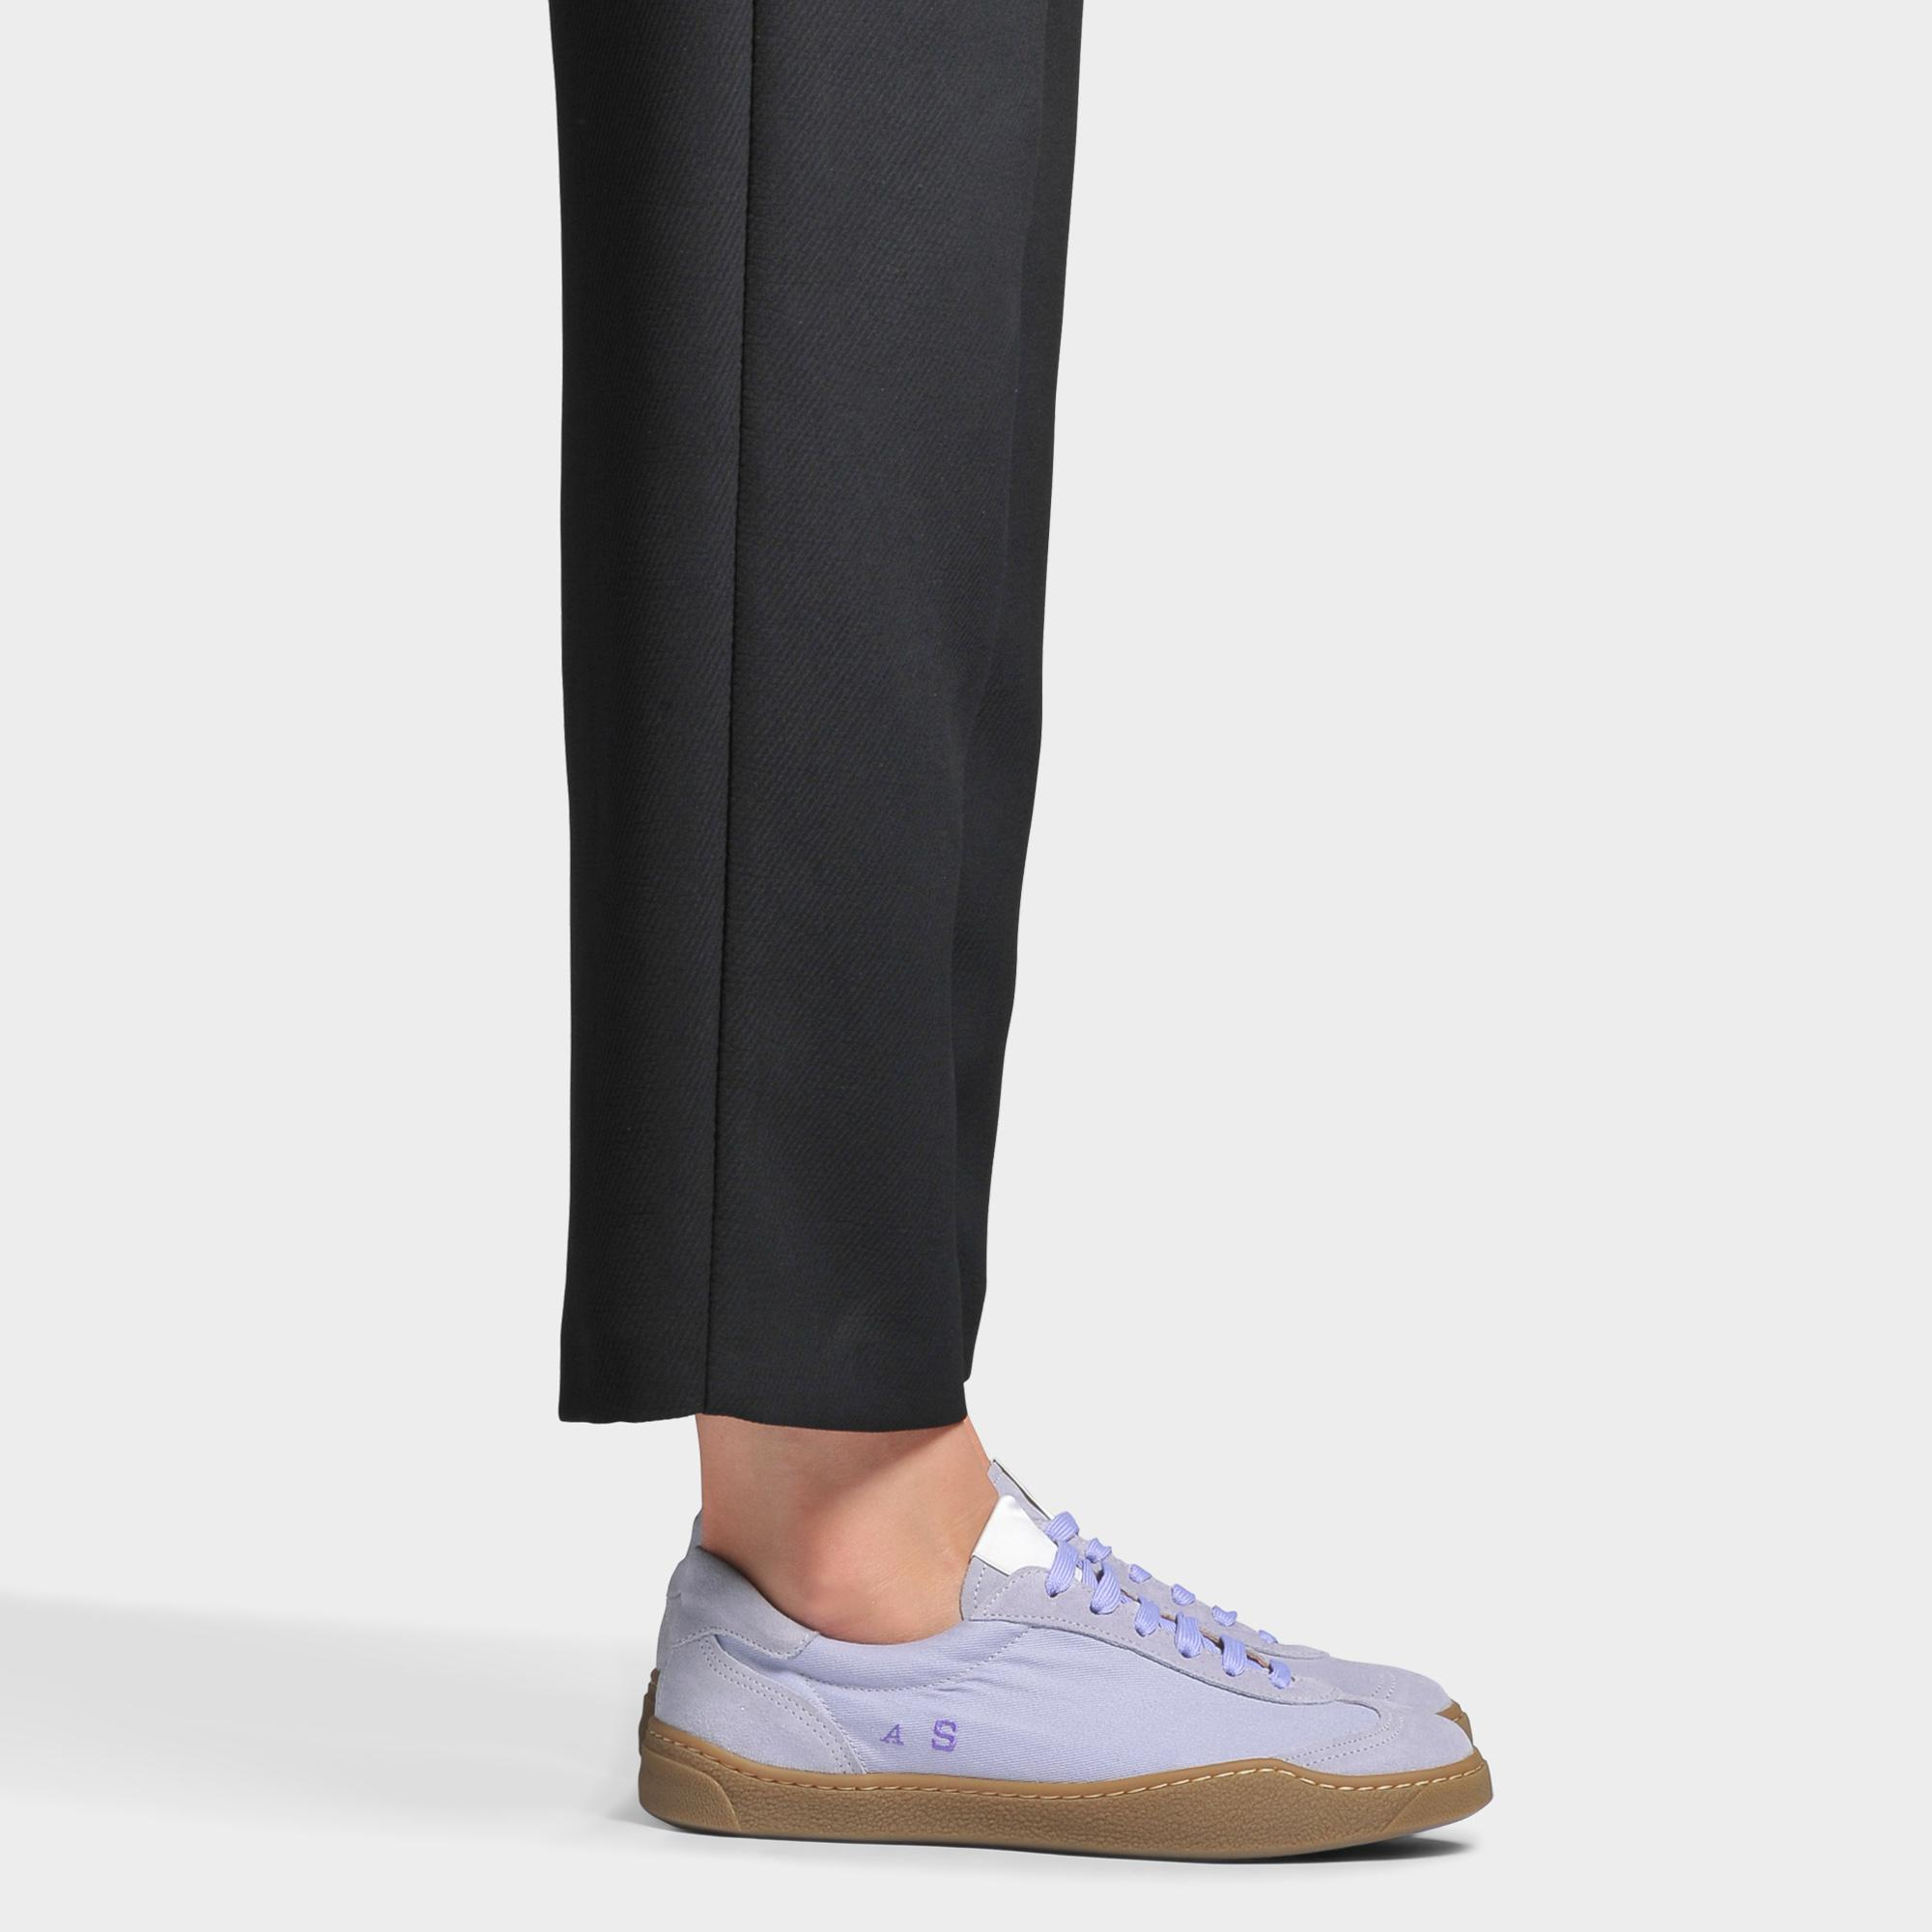 Acne Studios Denim Lhara Sneakers